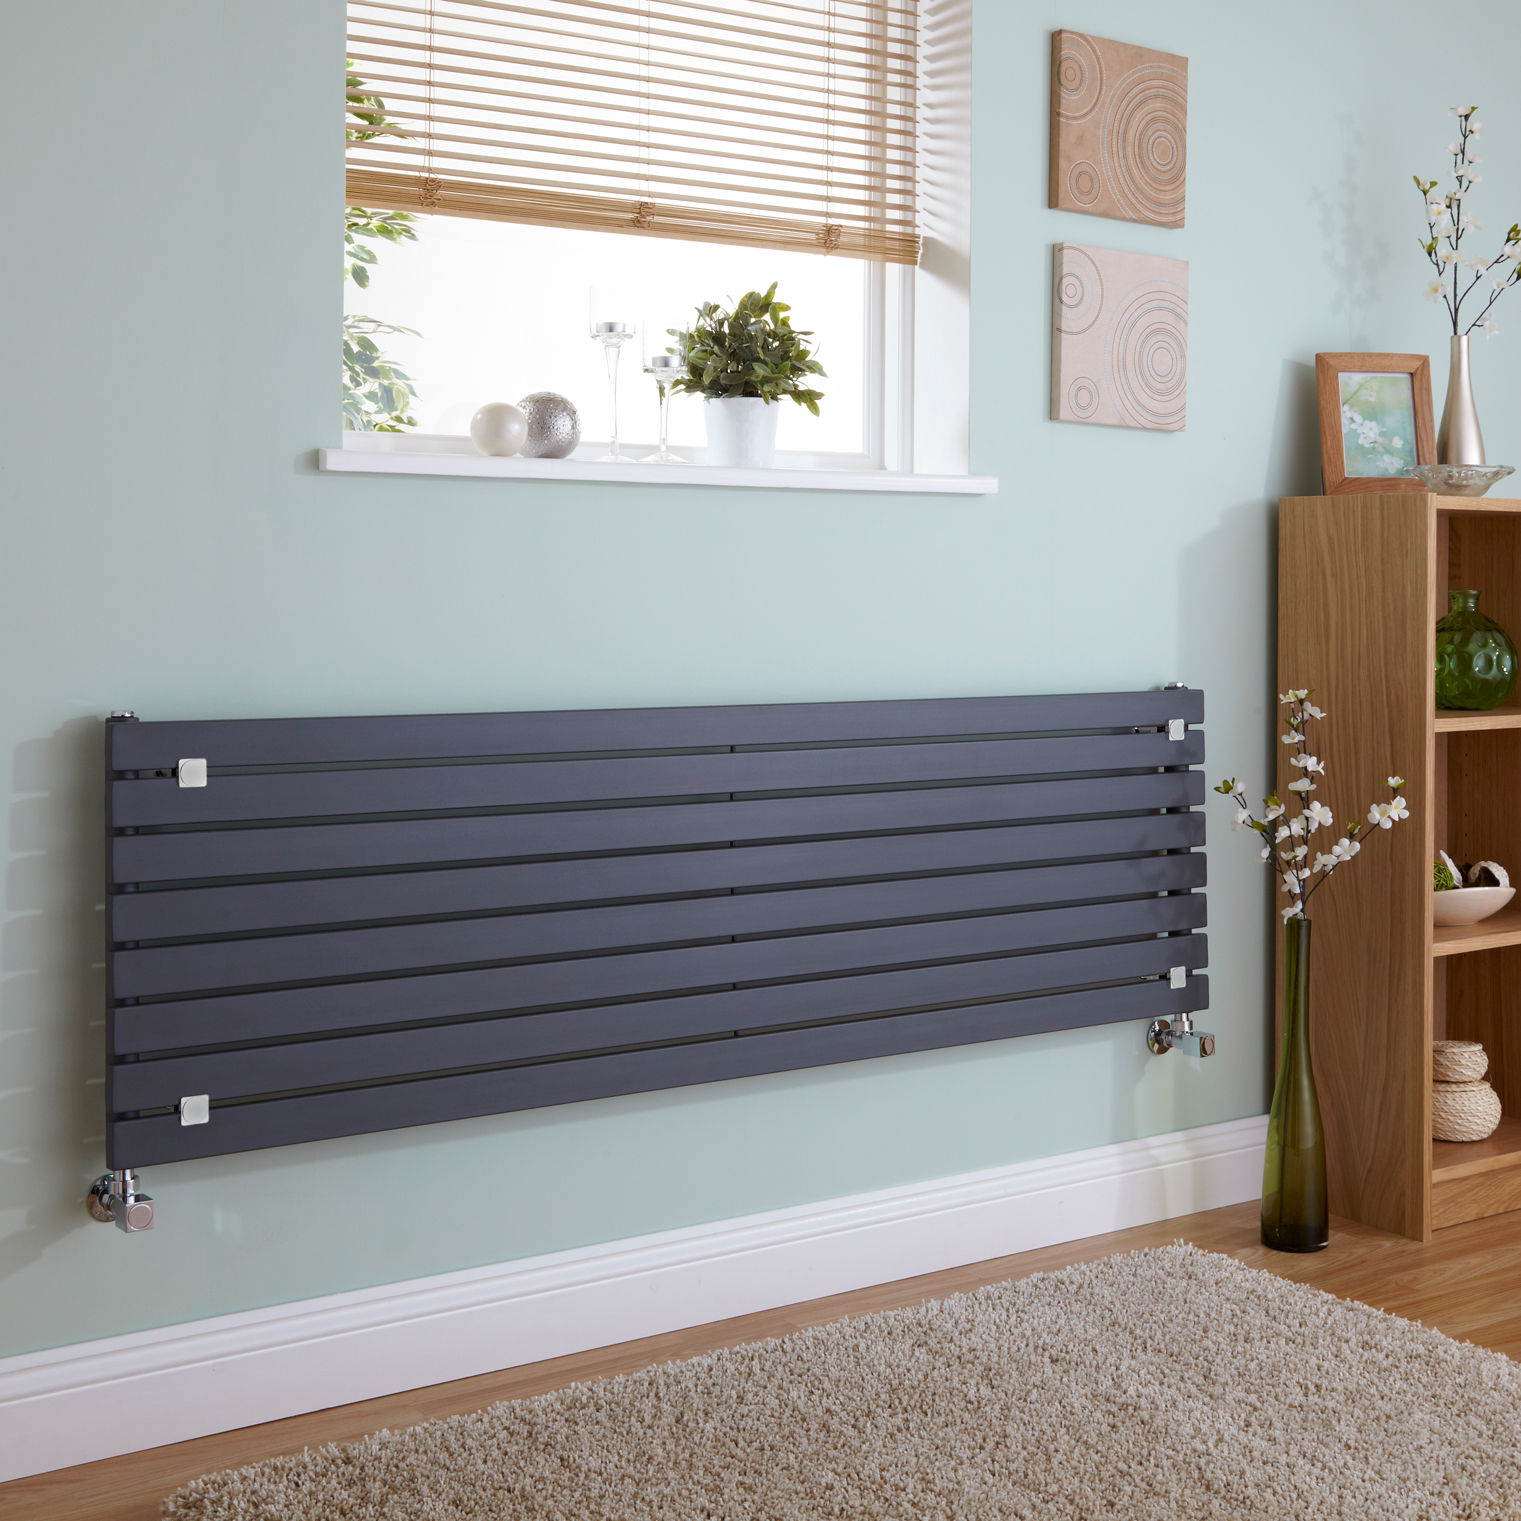 Milano Capri - Anthracite Horizontal Flat Panel Designer Radiator - 472mm x 1600mm